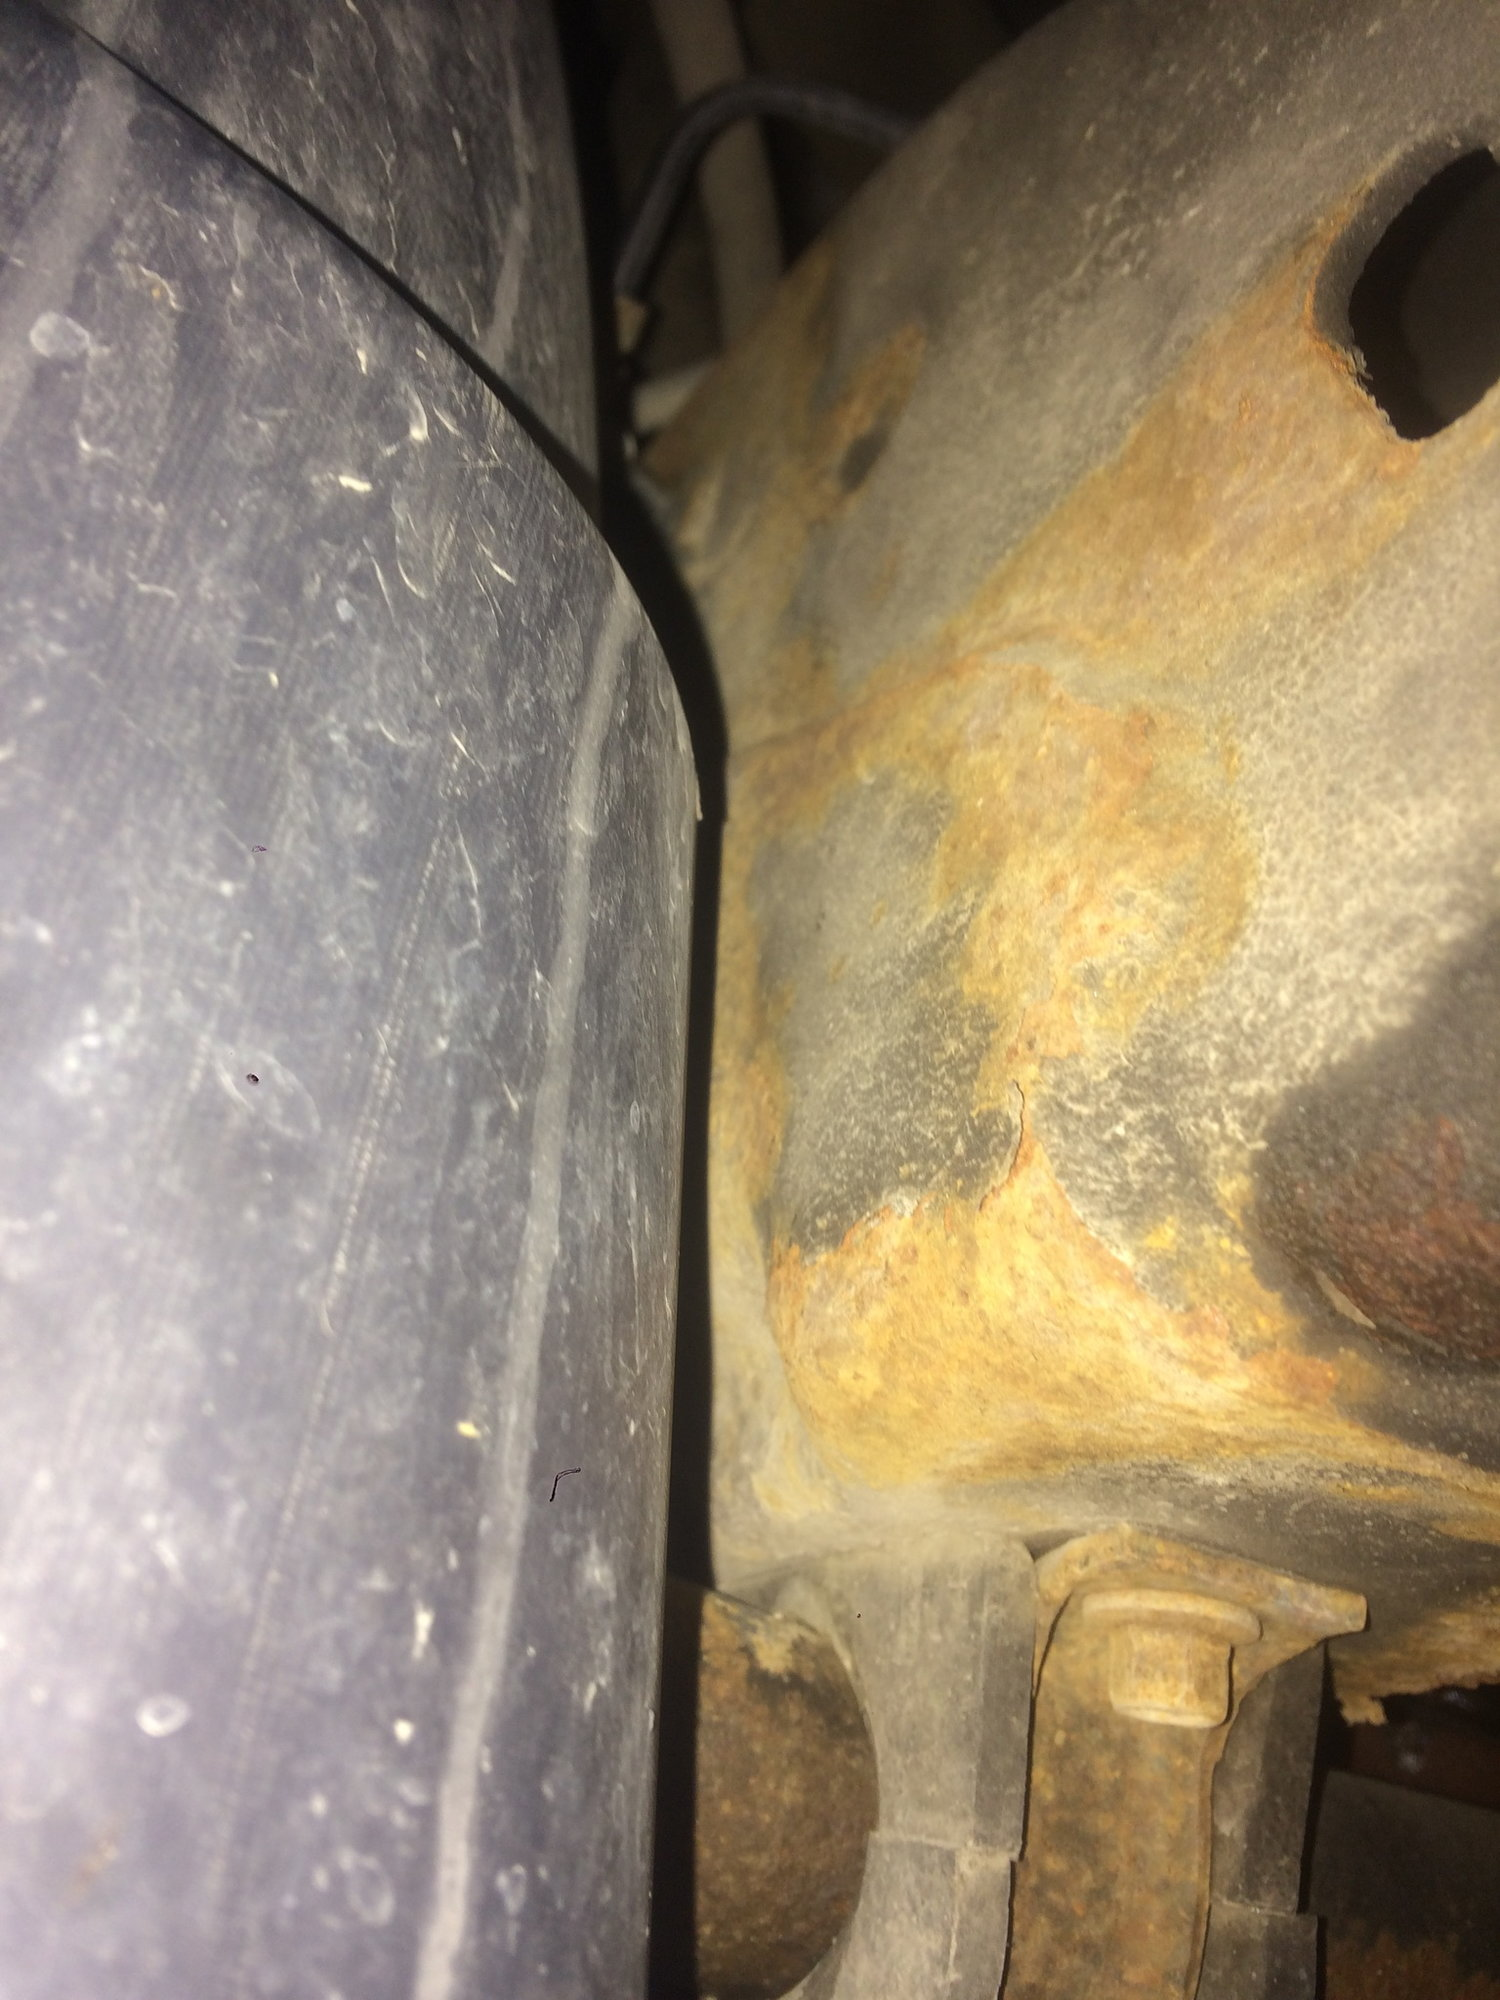 2008 Suburban 1500 sway bar mount tore out of the frame